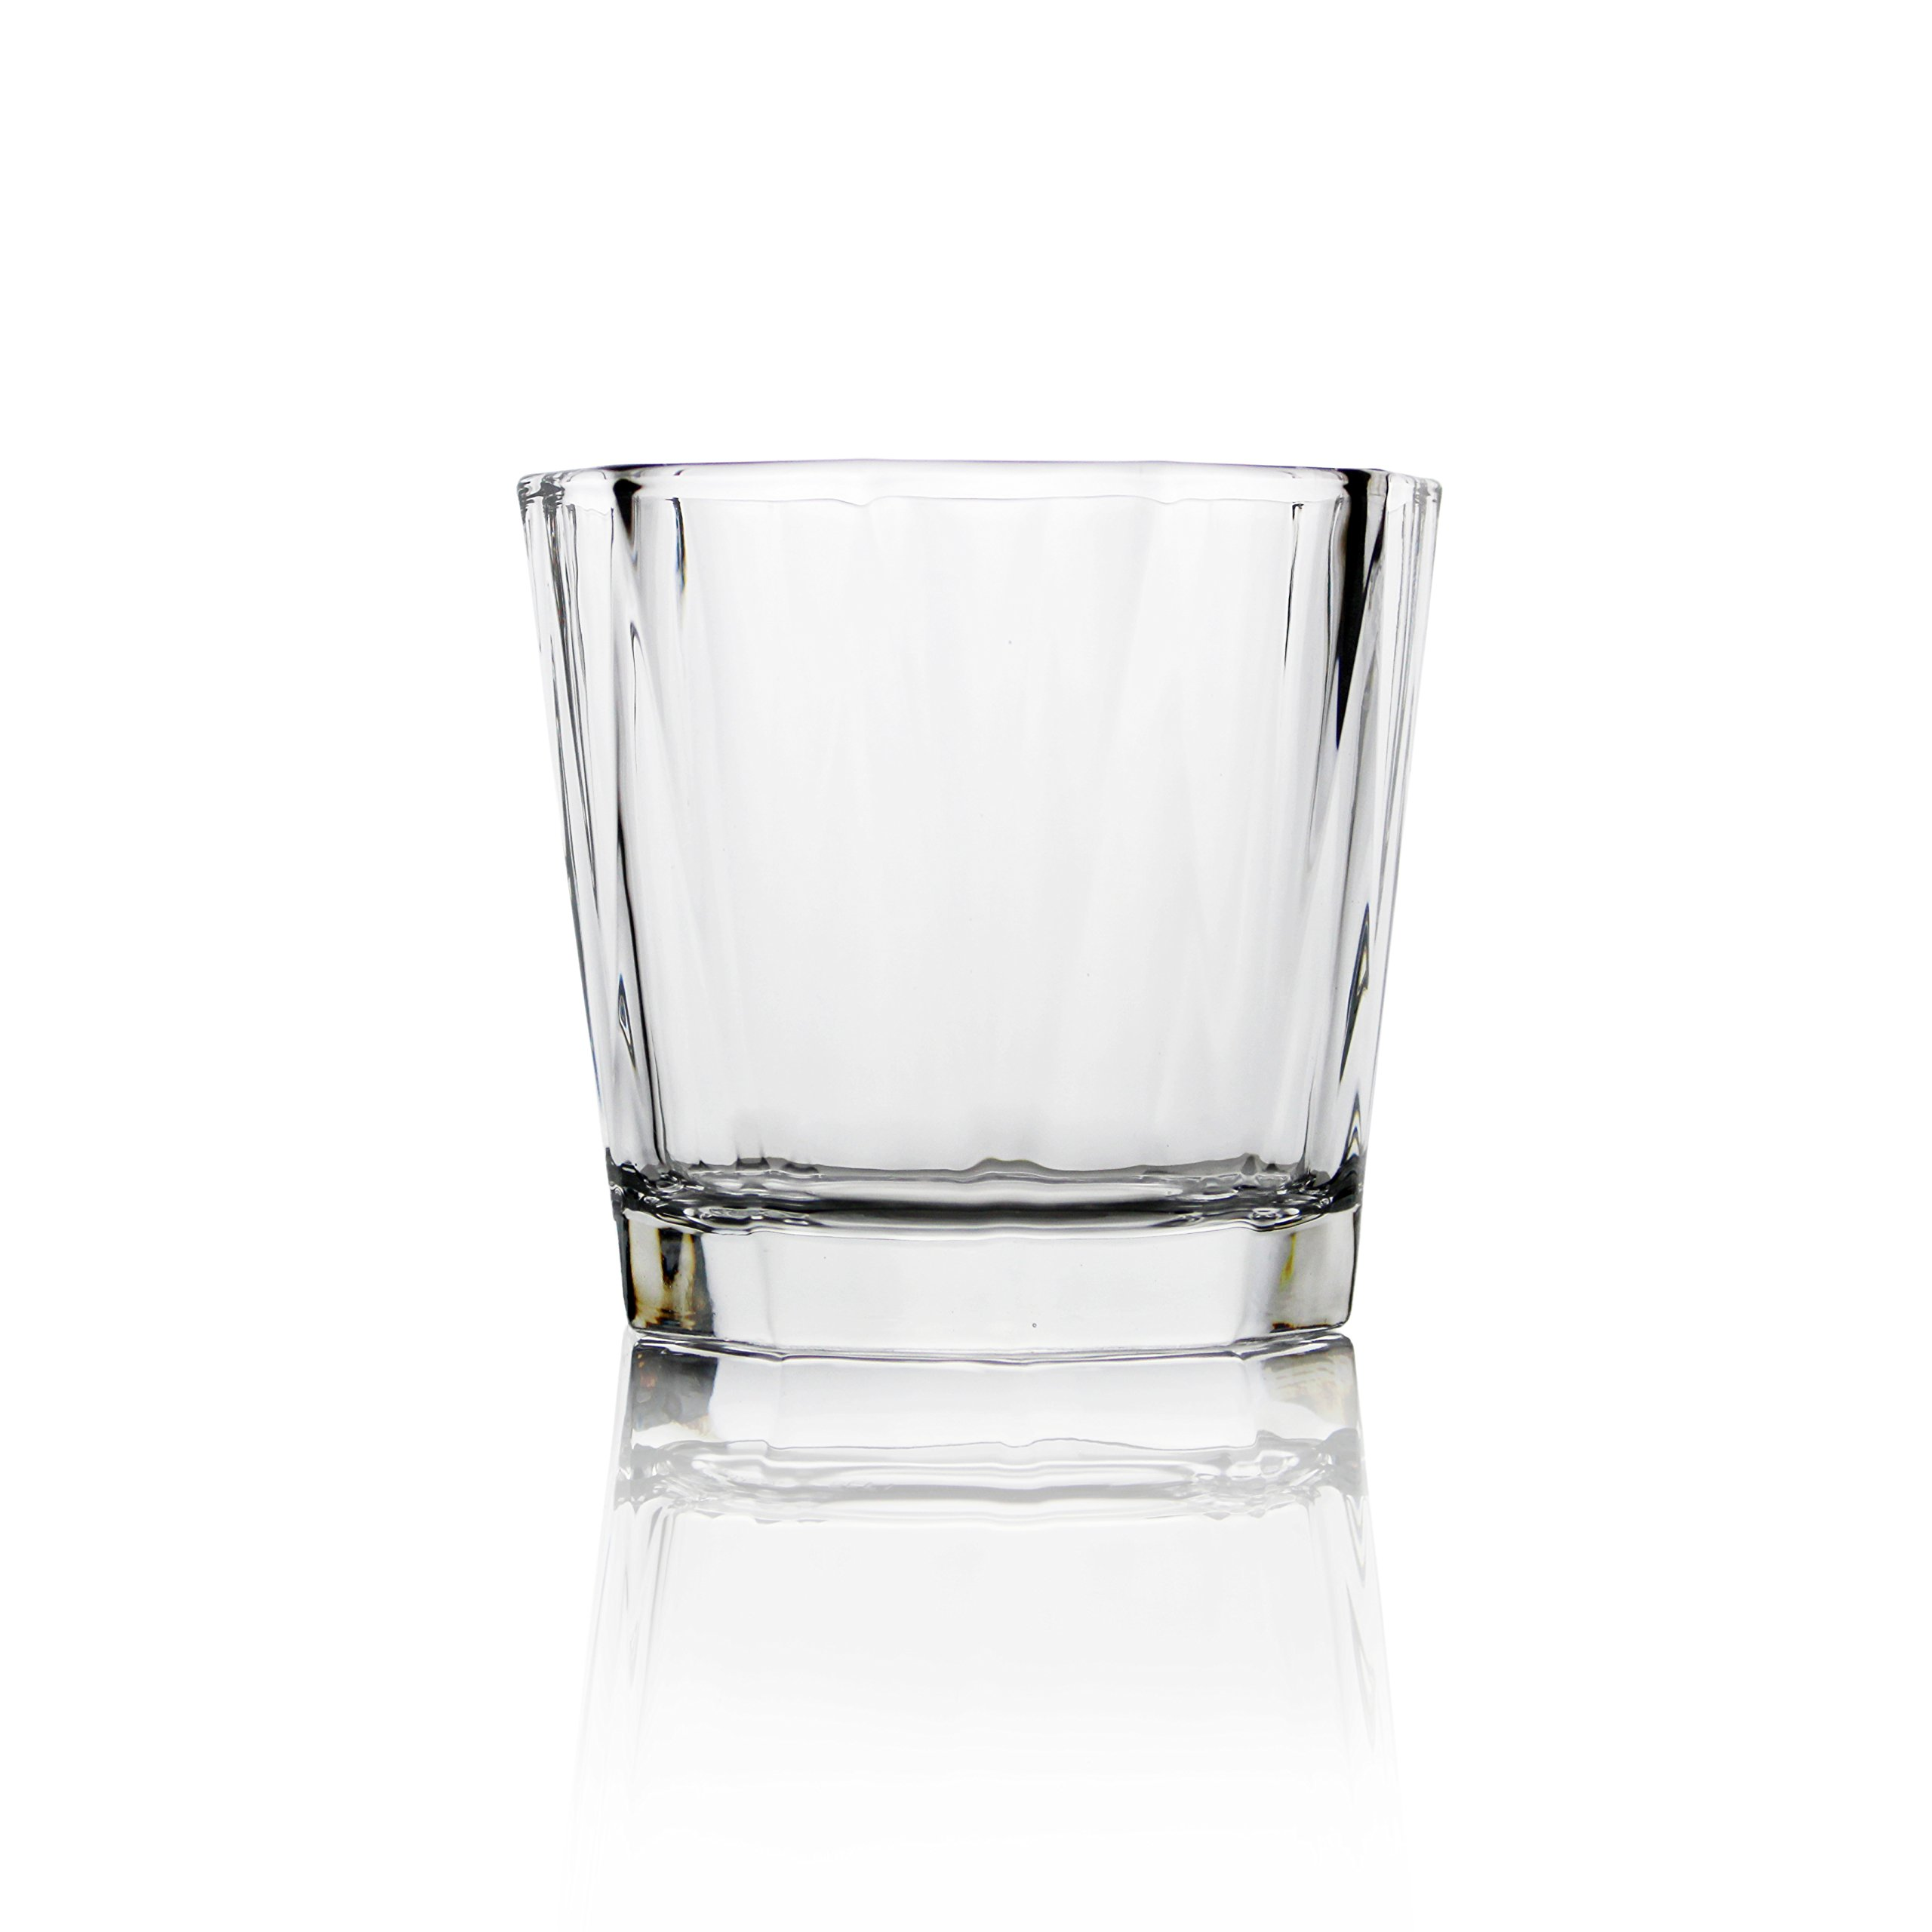 Deluxe Set Of 4 10 Oz/310 Ml Whiskey Drinking Glasses By Summit One – Lead-Free Drink Tumblers For Scotch, Bourbon – Unique Modern Design W/ Heavy Base & Wide Mouth – Great Gift Idea